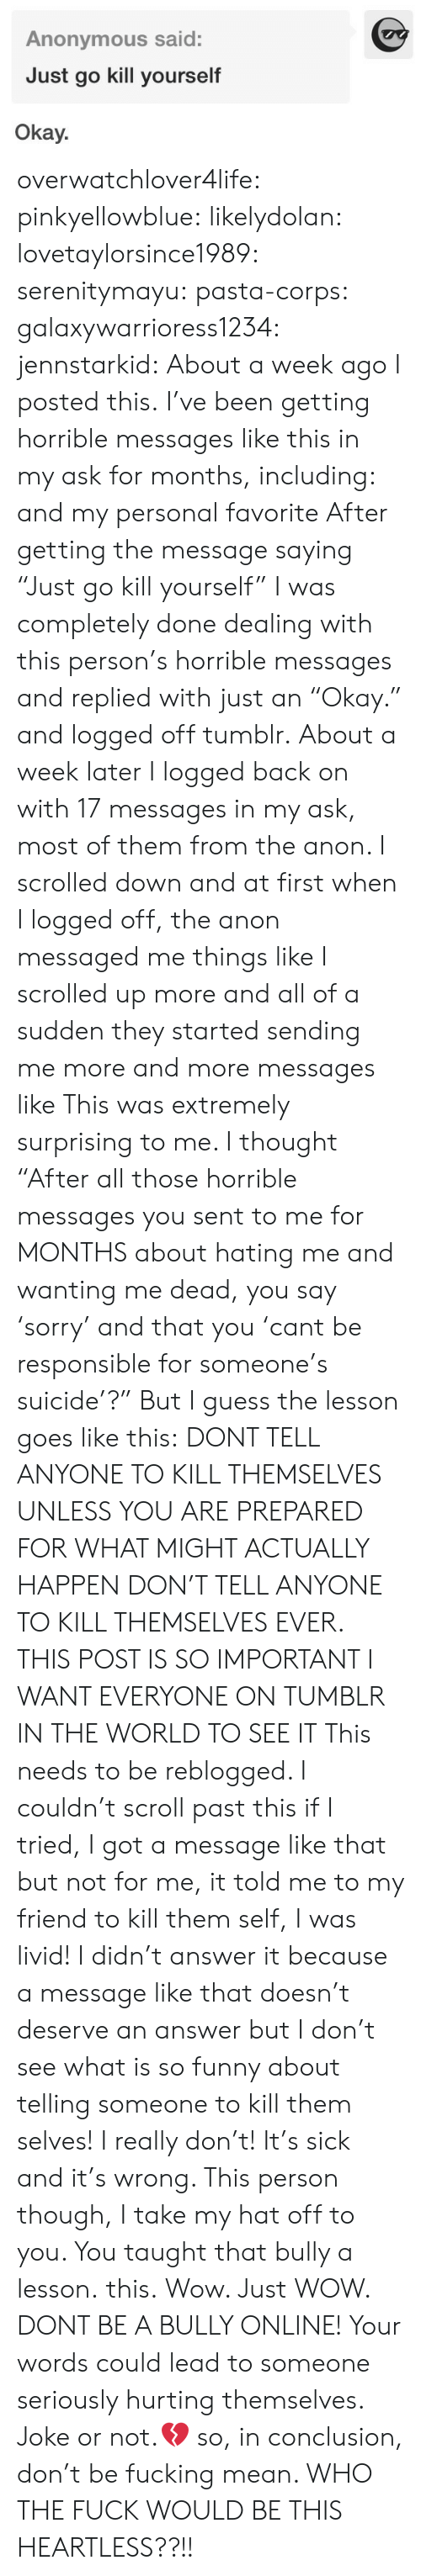 """kill yourself: Anonymous said:  Just go kill yourself  Okay. overwatchlover4life:  pinkyellowblue:  likelydolan:  lovetaylorsince1989:  serenitymayu:  pasta-corps:  galaxywarrioress1234:  jennstarkid:  About a week ago I posted this. I've been getting horrible messages like this in my ask for months, including:  and my personal favorite After getting the message saying """"Just go kill yourself"""" I was completely done dealing with this person's horrible messages and replied with just an """"Okay."""" and logged off tumblr. About a week later I logged back on with 17 messages in my ask, most of them from the anon. I scrolled down and at first when I logged off, the anon messaged me things like I scrolled up more and all of a sudden they started sending me more and more messages like This was extremely surprising to me. I thought """"After all those horrible messages you sent to me for MONTHS about hating me and wanting me dead, you say 'sorry' and that you 'cant be responsible for someone's suicide'?"""" But I guess the lesson goes like this: DONT TELL ANYONE TO KILL THEMSELVES UNLESS YOU ARE PREPARED FOR WHAT MIGHT ACTUALLY HAPPEN   DON'T TELL ANYONE TO KILL THEMSELVES EVER.  THIS POST IS SO IMPORTANT I WANT EVERYONE ON TUMBLR IN THE WORLD TO SEE IT  This needs to be reblogged. I couldn't scroll past this if I tried, I got a message like that but not for me, it told me to my friend to kill them self, I was livid! I didn't answer it because a message like that doesn't deserve an answer but I don't see what is so funny about telling someone to kill them selves! I really don't! It's sick and it's wrong. This person though, I take my hat off to you. You taught that bully a lesson.  this.   Wow. Just WOW. DONT BE A BULLY ONLINE! Your words could lead to someone seriously hurting themselves. Joke or not.💔  so, in conclusion, don't be fucking mean.   WHO THE FUCK WOULD BE THIS HEARTLESS??!!"""